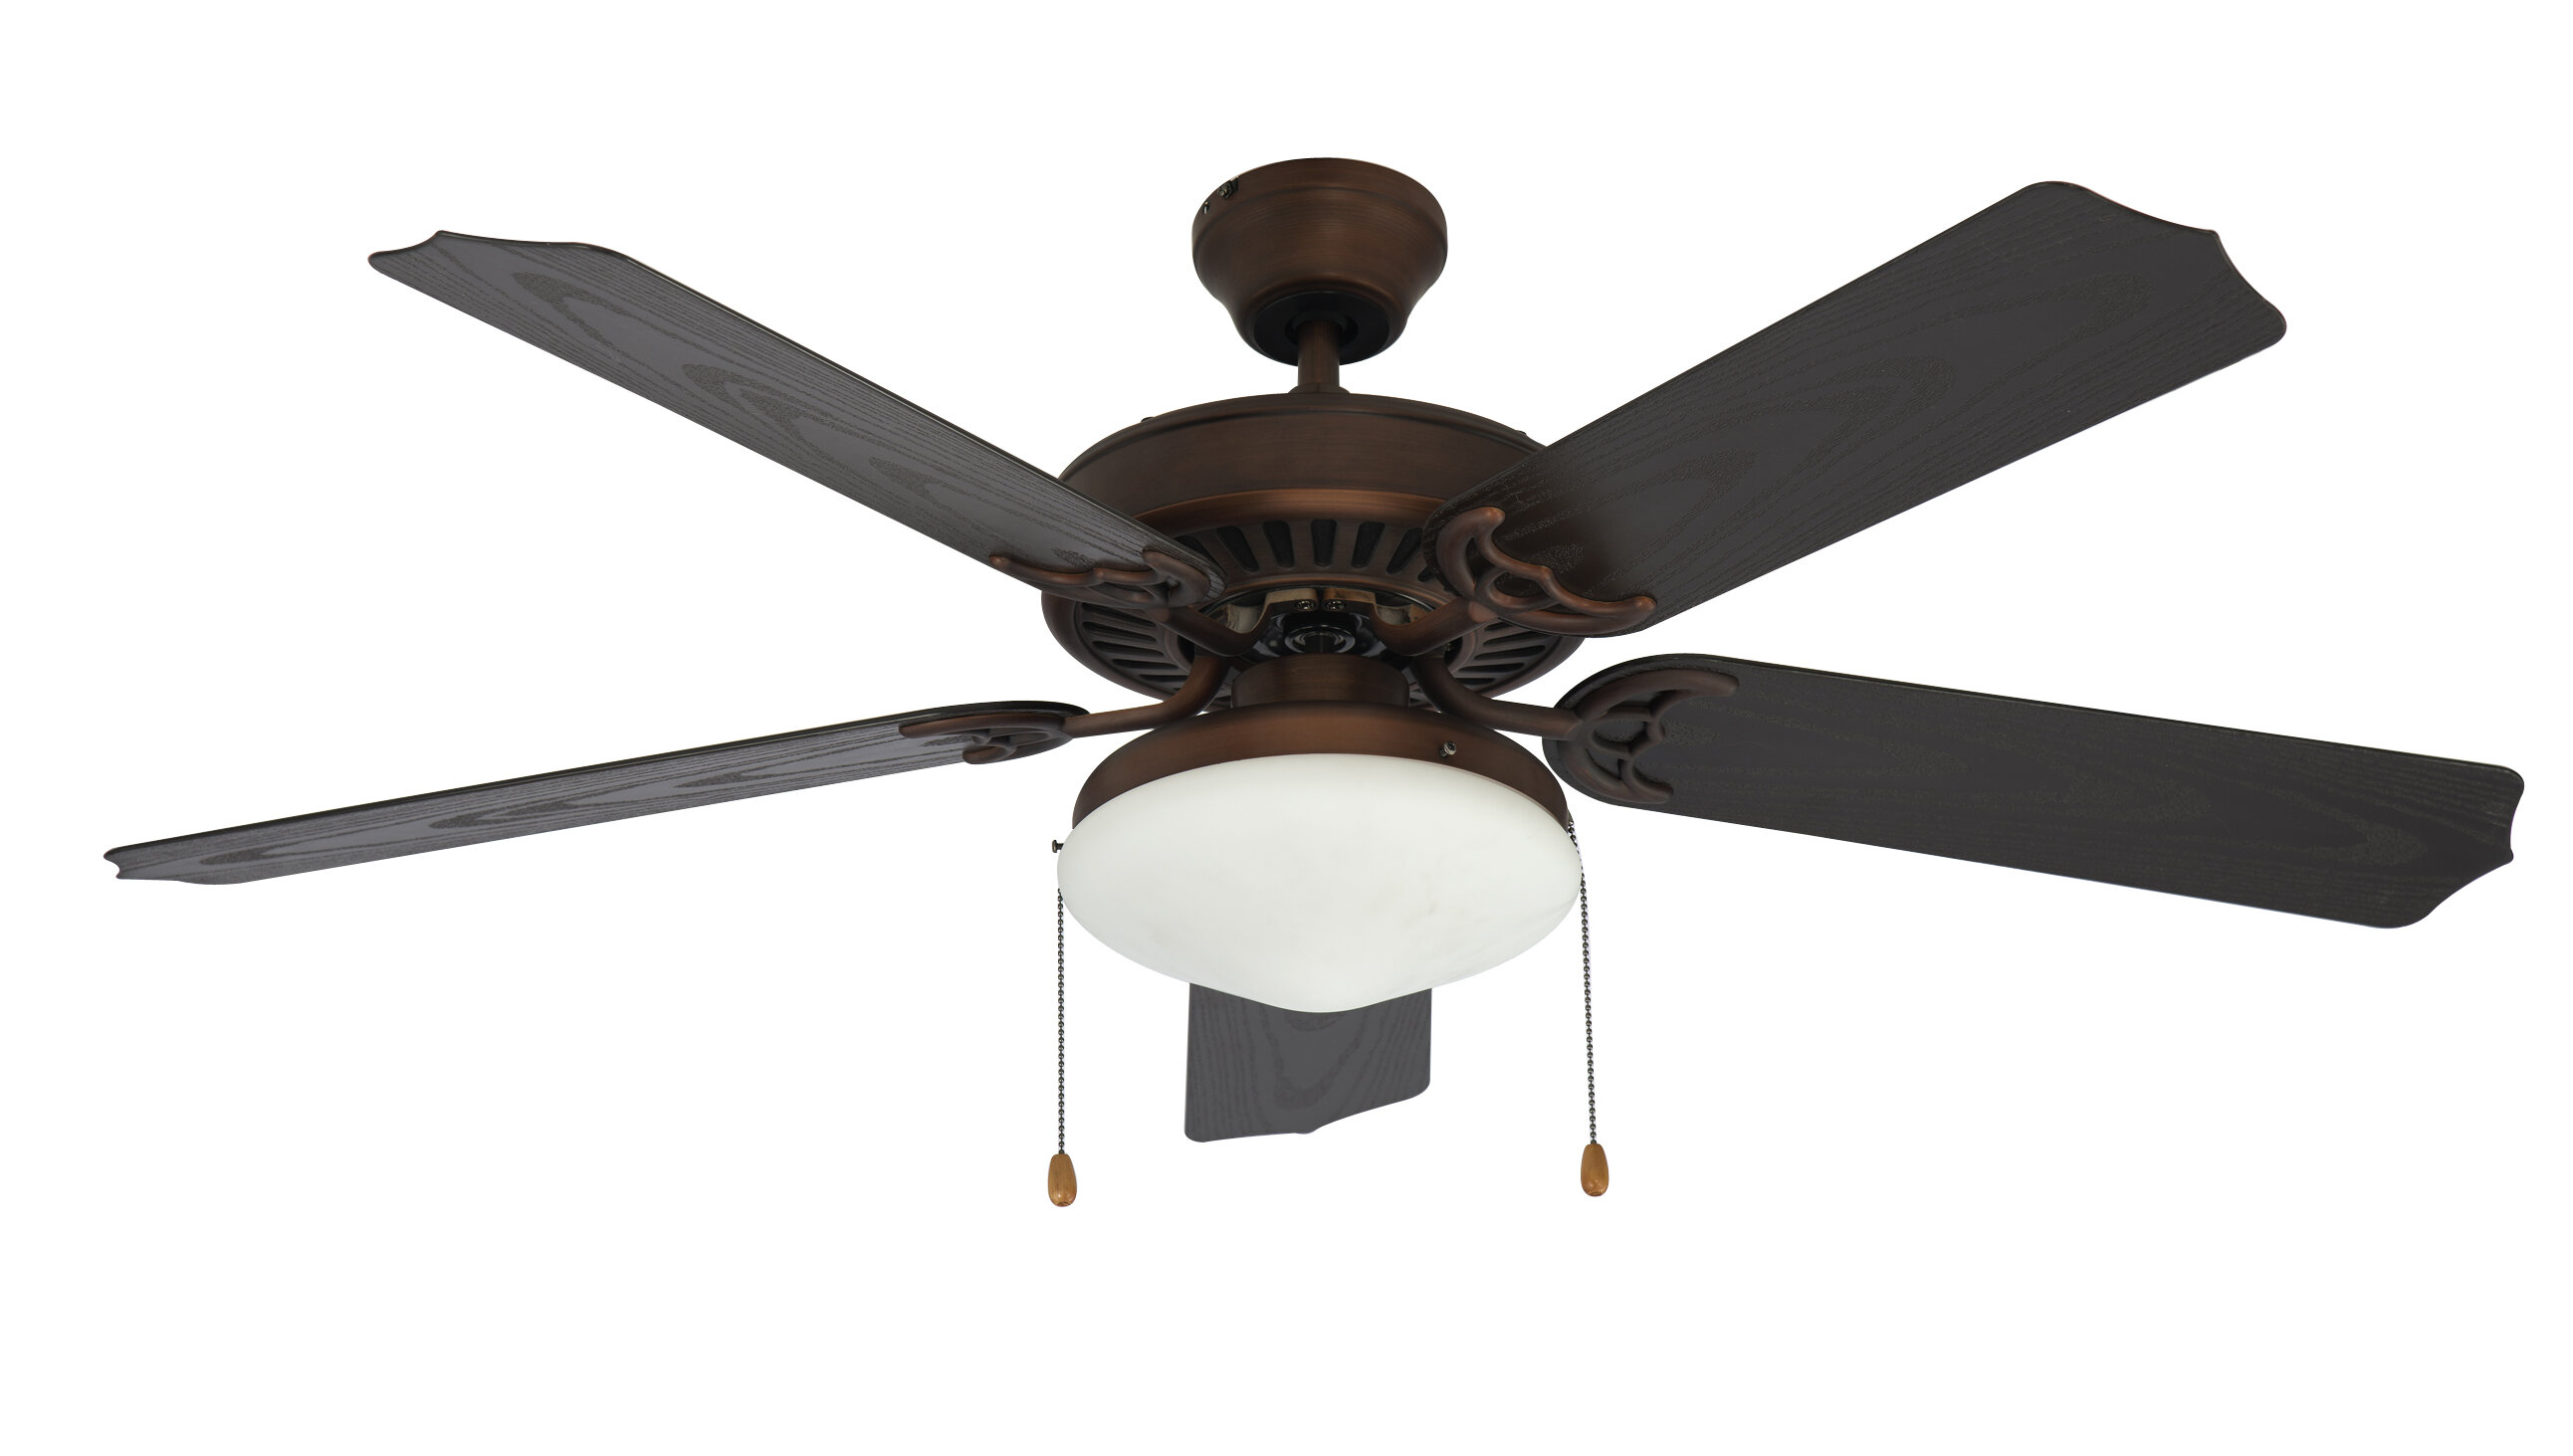 Marvelous Searles 5 Blade Ceiling Fan